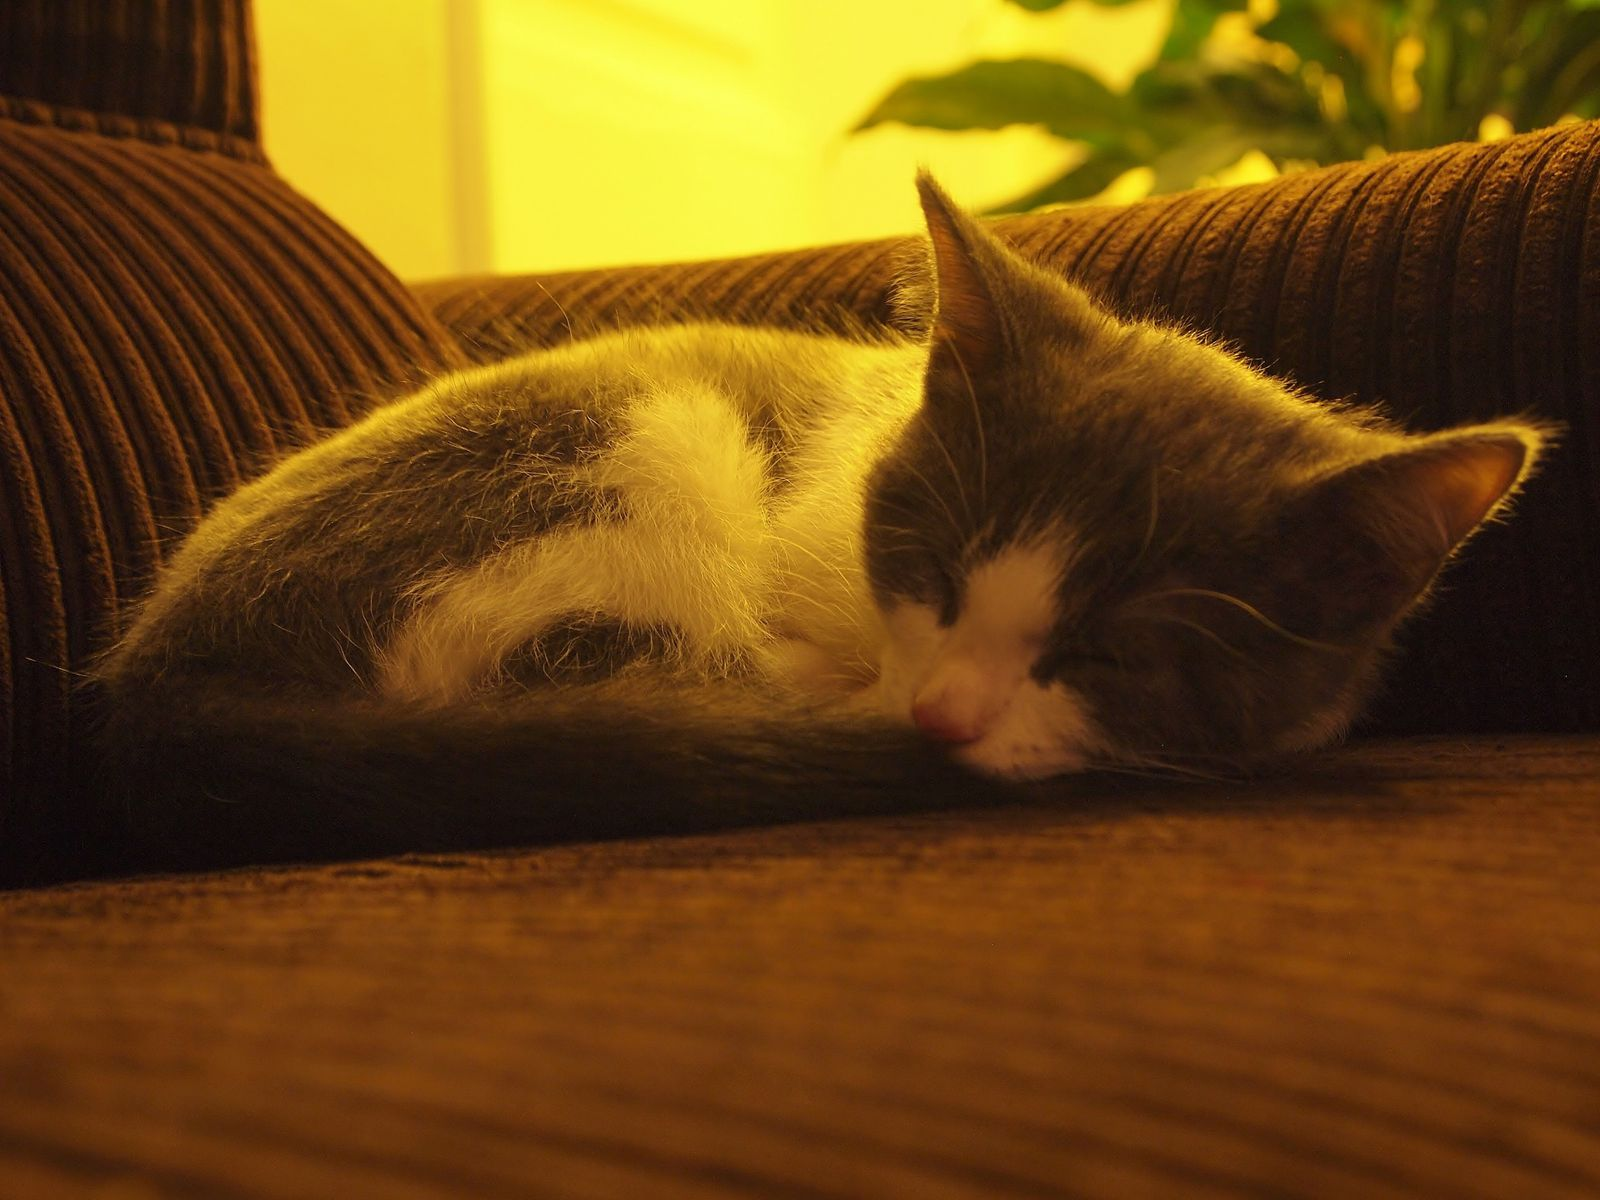 Gunther-sommeil-fauteuil-chat.JPG